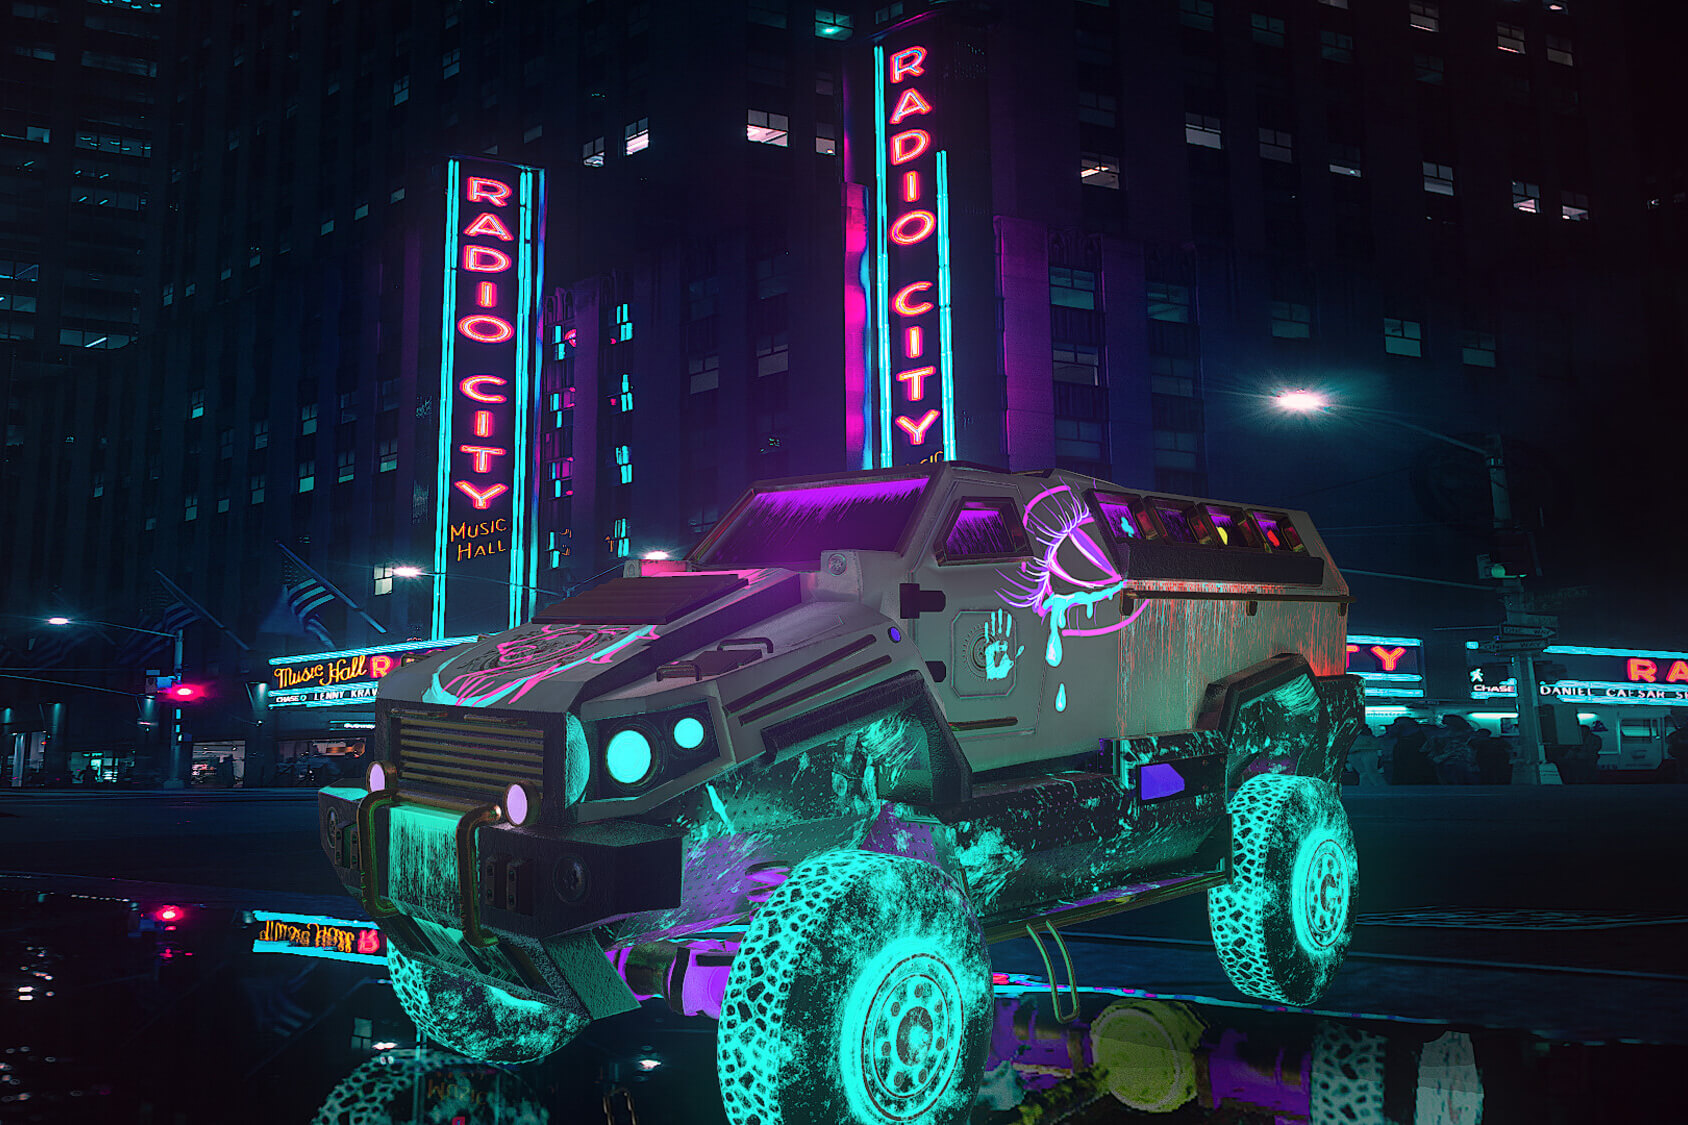 Night scene with neon painted truck and neon 'Radio City' signs on building behind